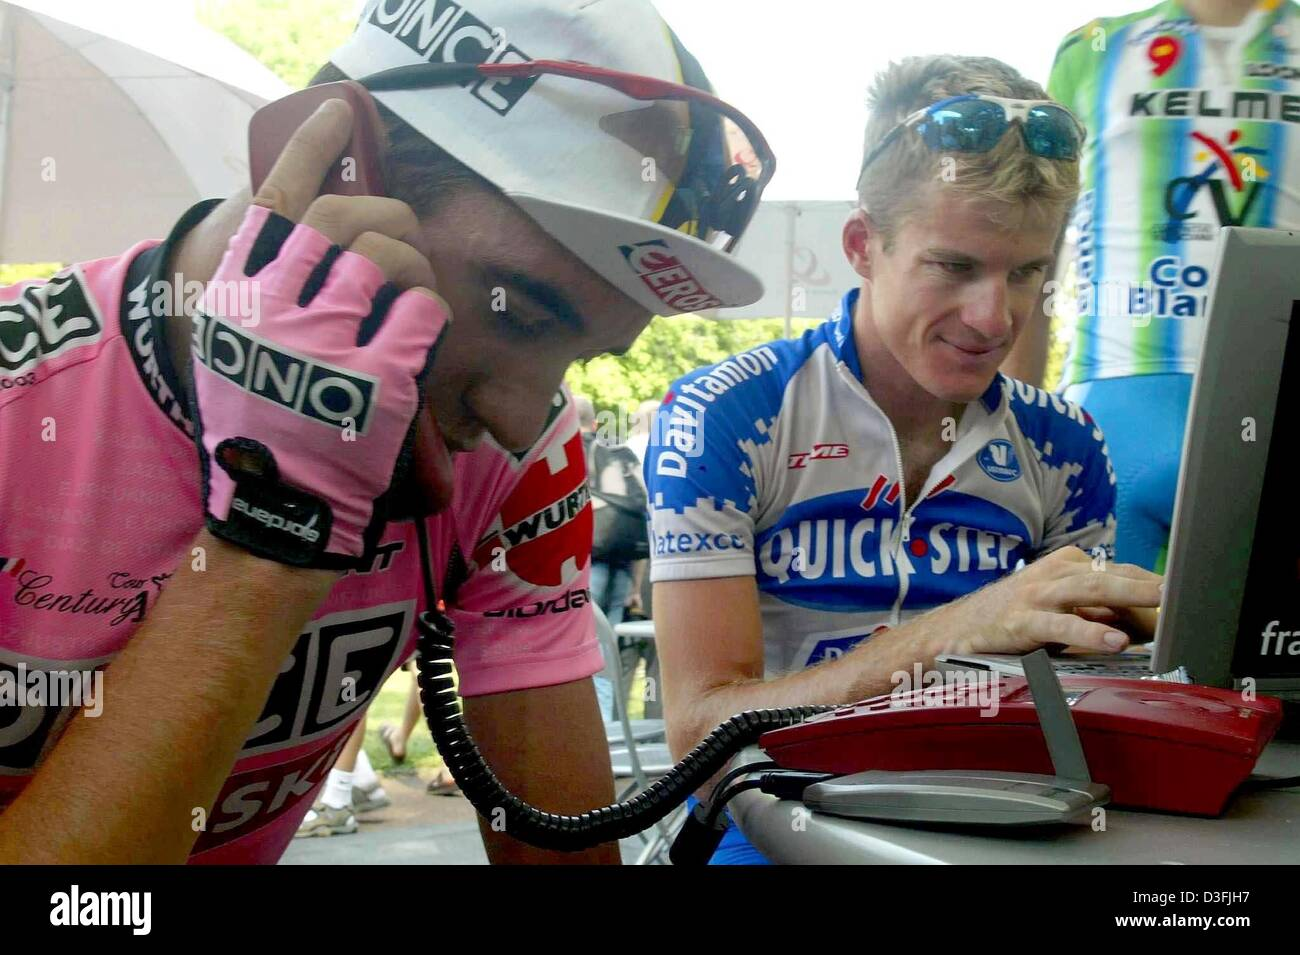 (dpa) - Spanish cyclist Isidor Nozal (L) (Team Once-Eroski) makes a quick  telephone call while Australian Michael Rogers (R) (Quick Step-Davitamon)  surfs ... 157a26da7